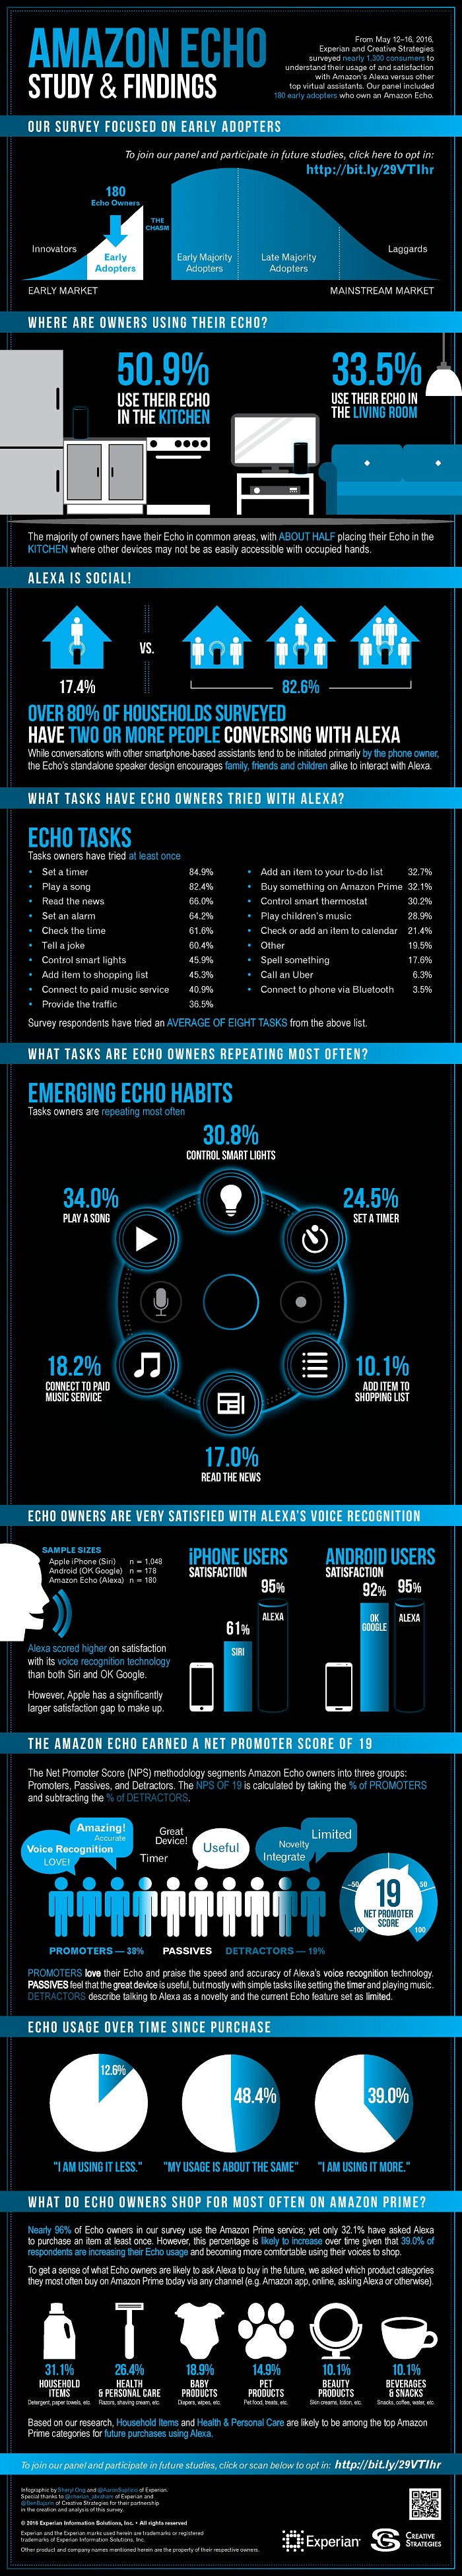 amazon-echo-infographic